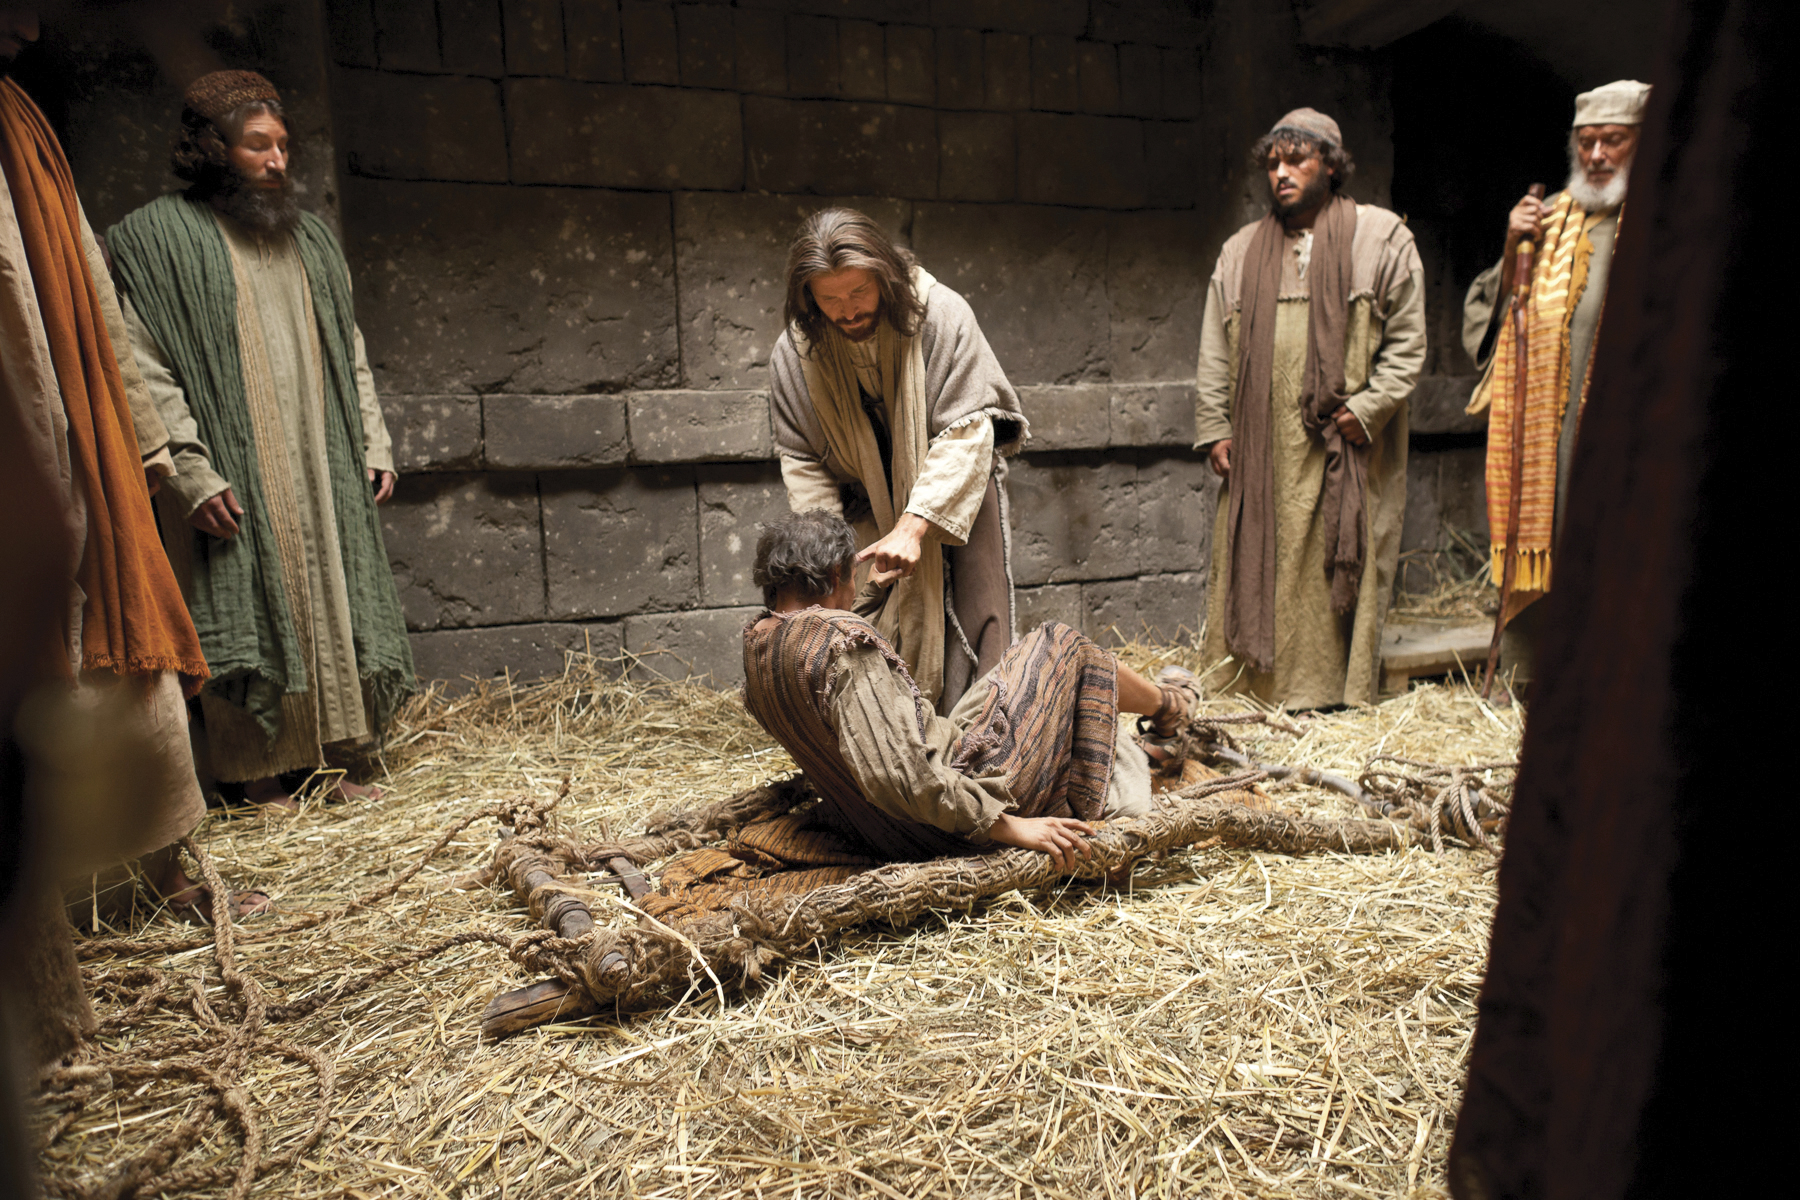 Jesus forgives the sins of the man stricken with palsy and heals him.